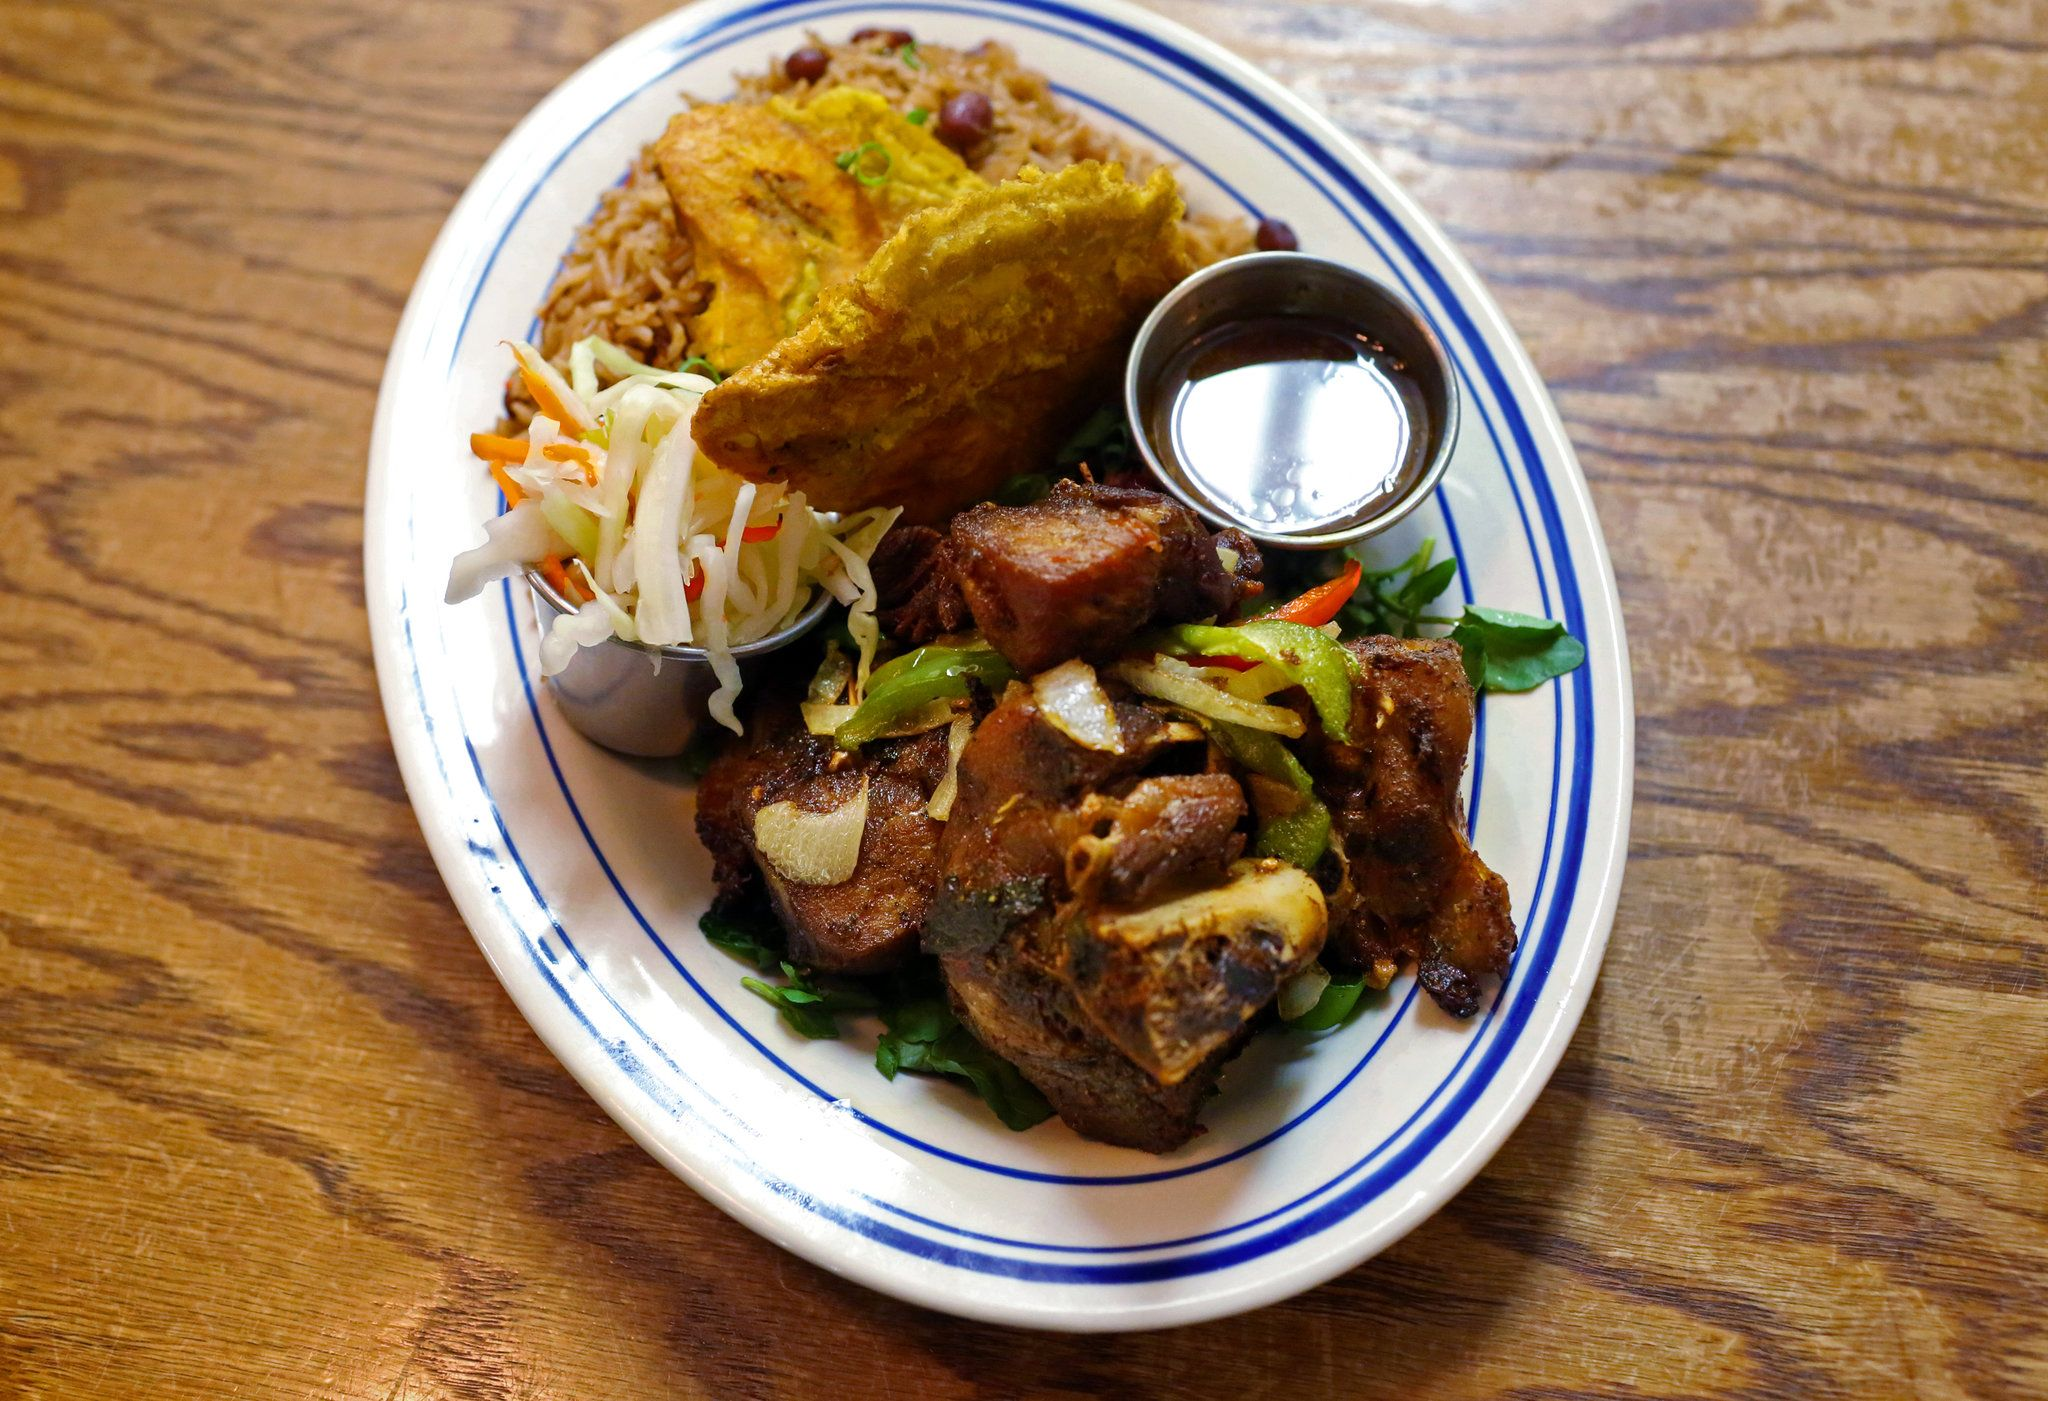 A Restaurant Wants To Evangelize On Behalf Of Haitian Food